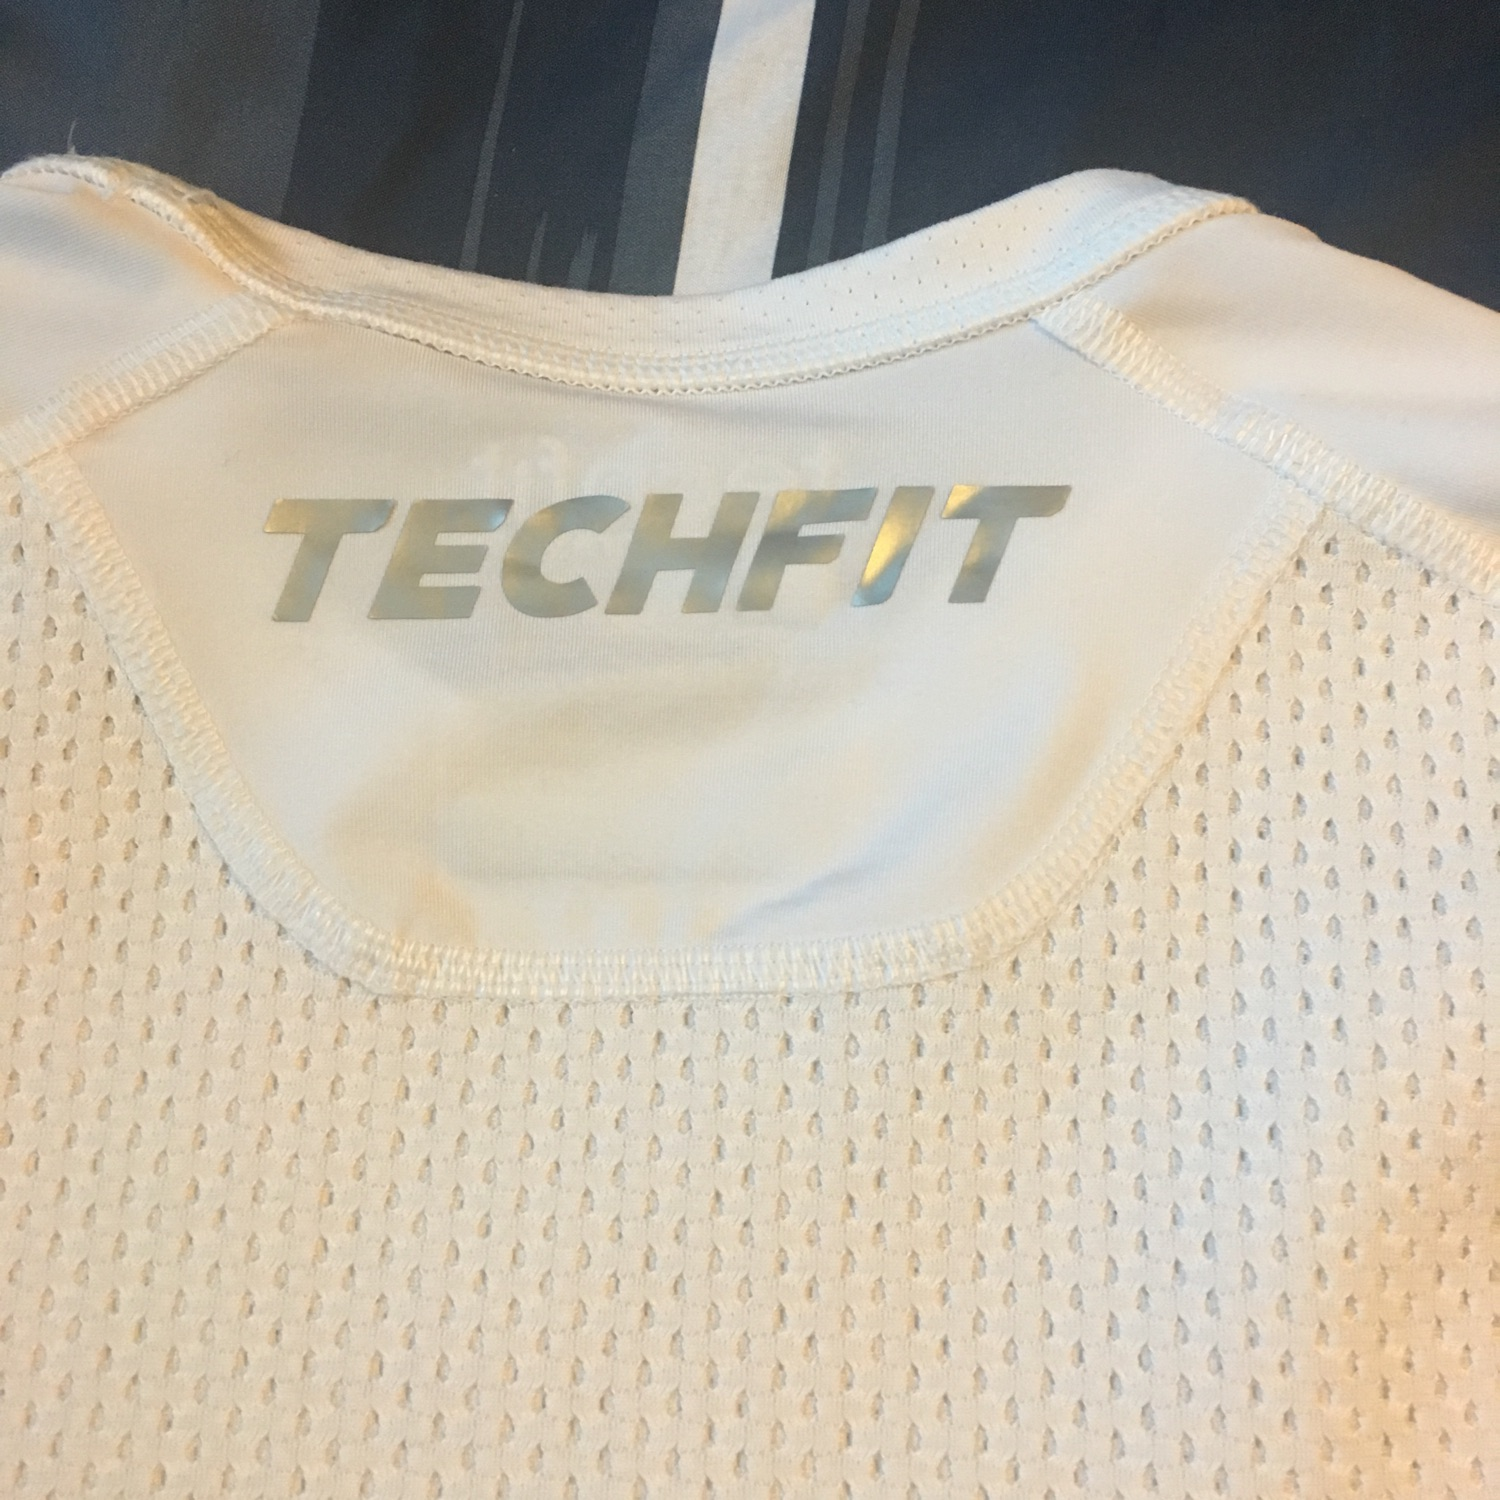 new product 412dd 2353e Adidas Techfit Compression [Climacool]